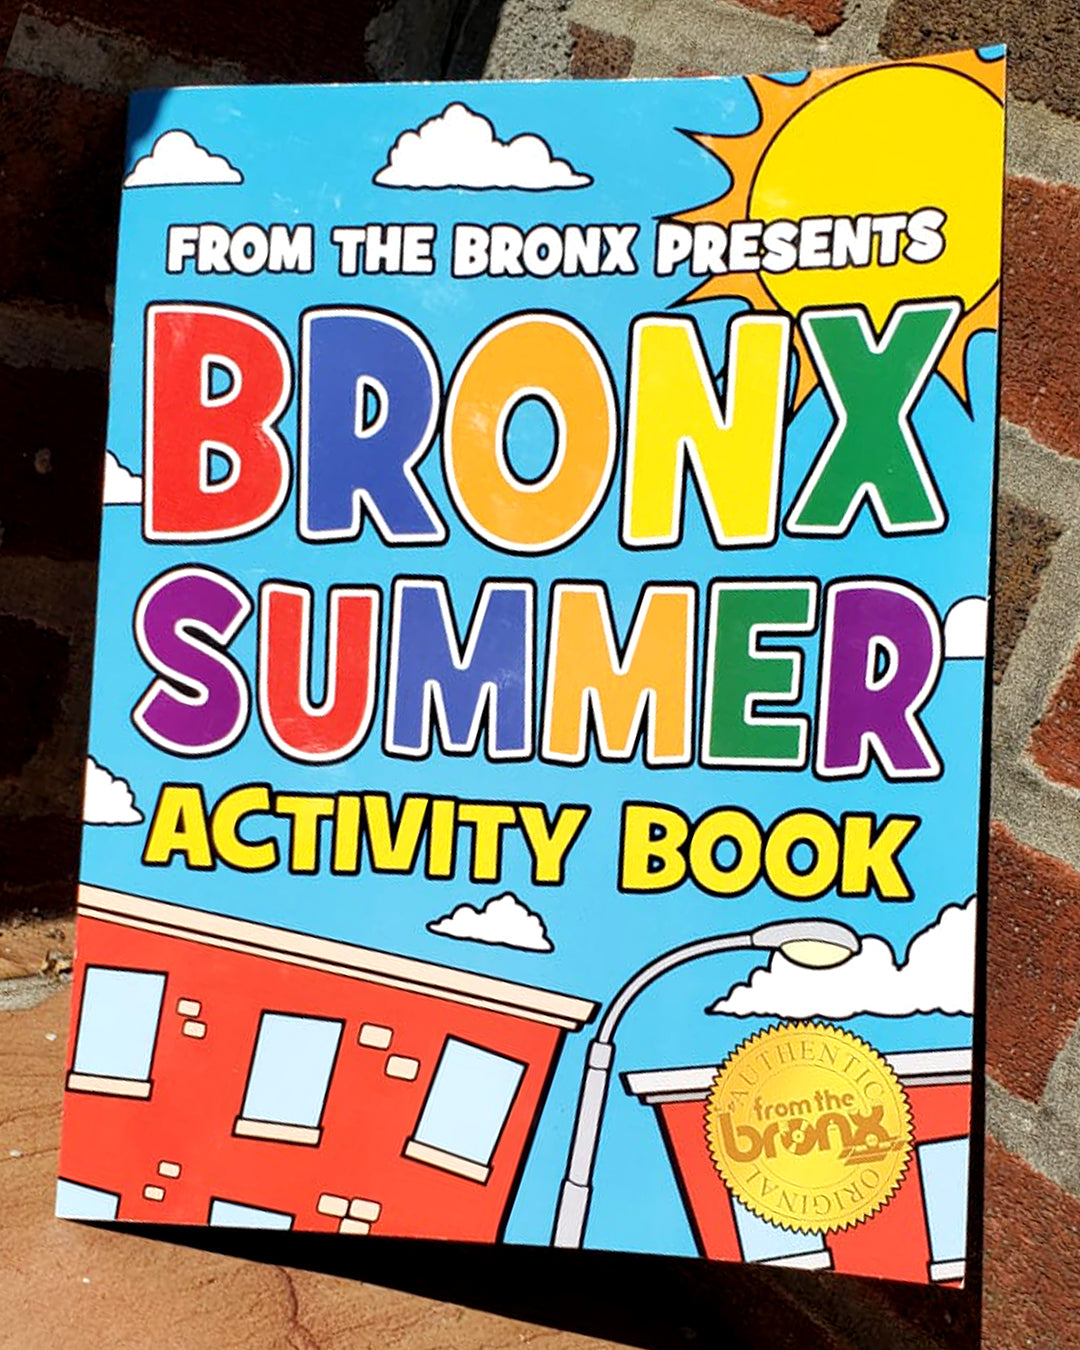 Bronx Summer Activity Book